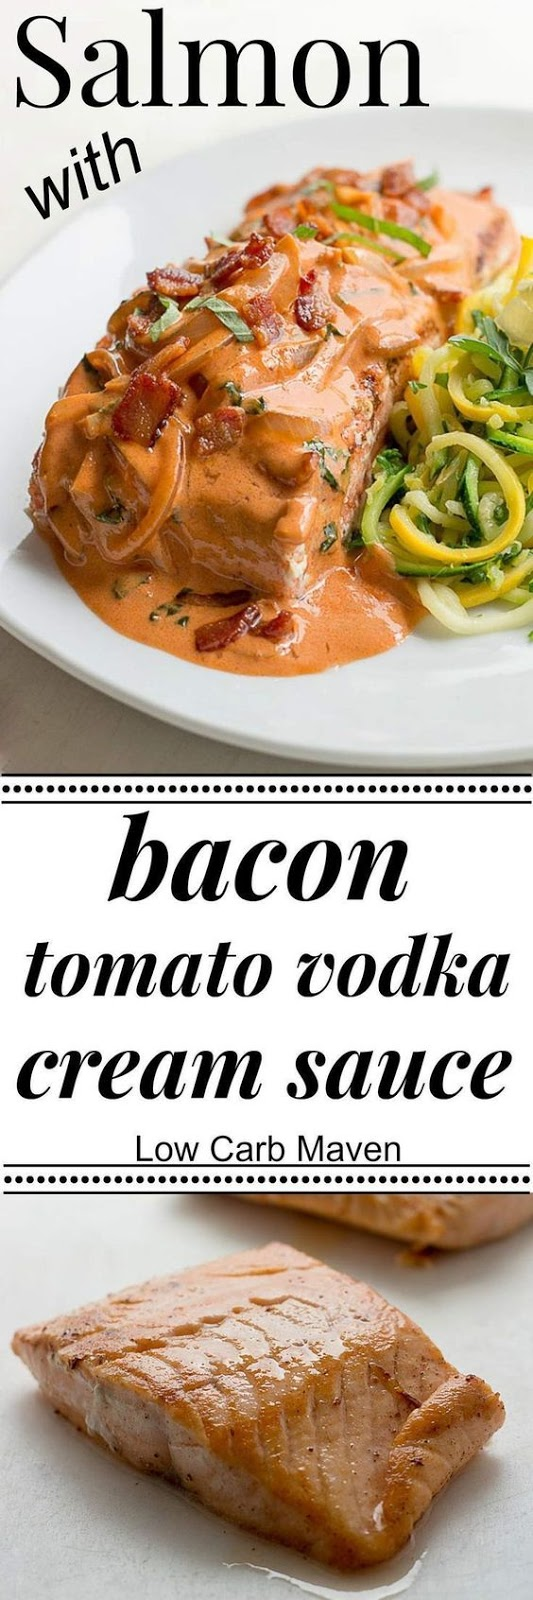 LOW CARB SALMON WITH BACON TOMATO CREAM SAUCE